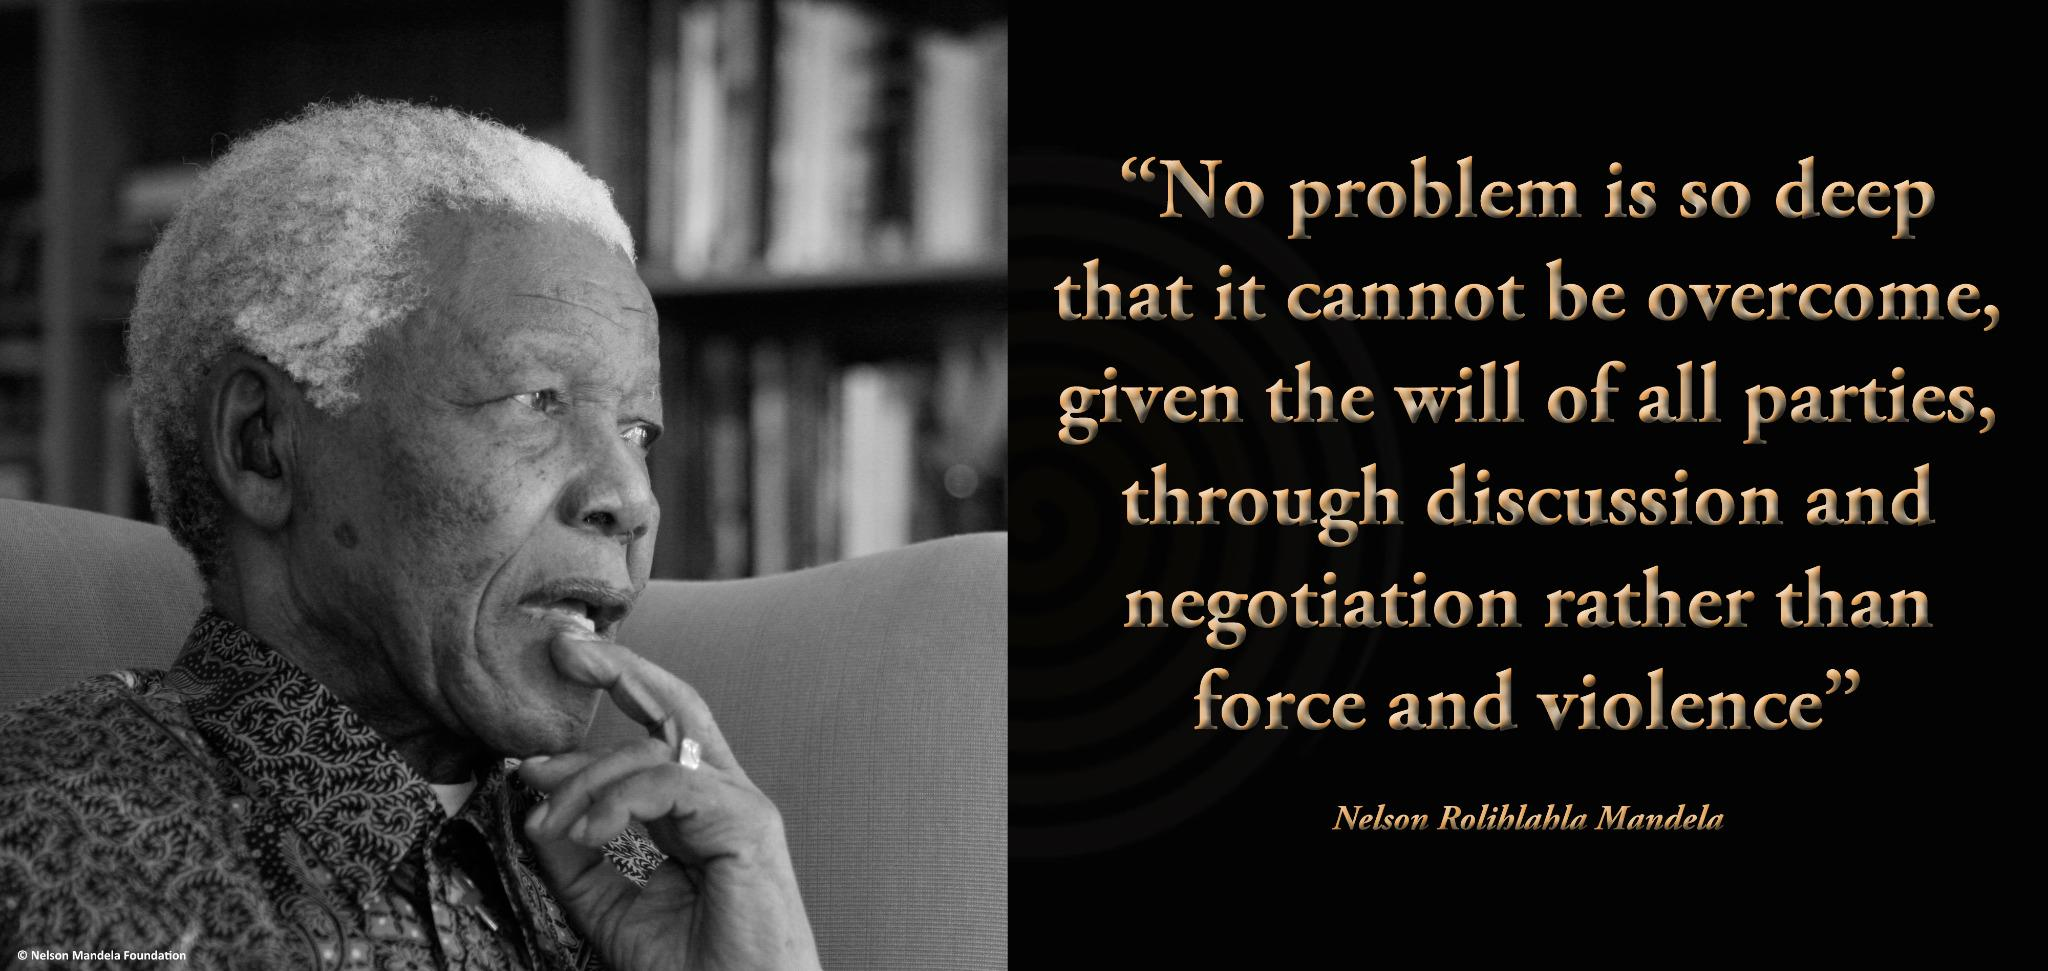 """""""No problem is so deep that it cannot be overcome, given the will of all parties, through discussion & negotiation"""" http://t.co/tkTl86orkL"""